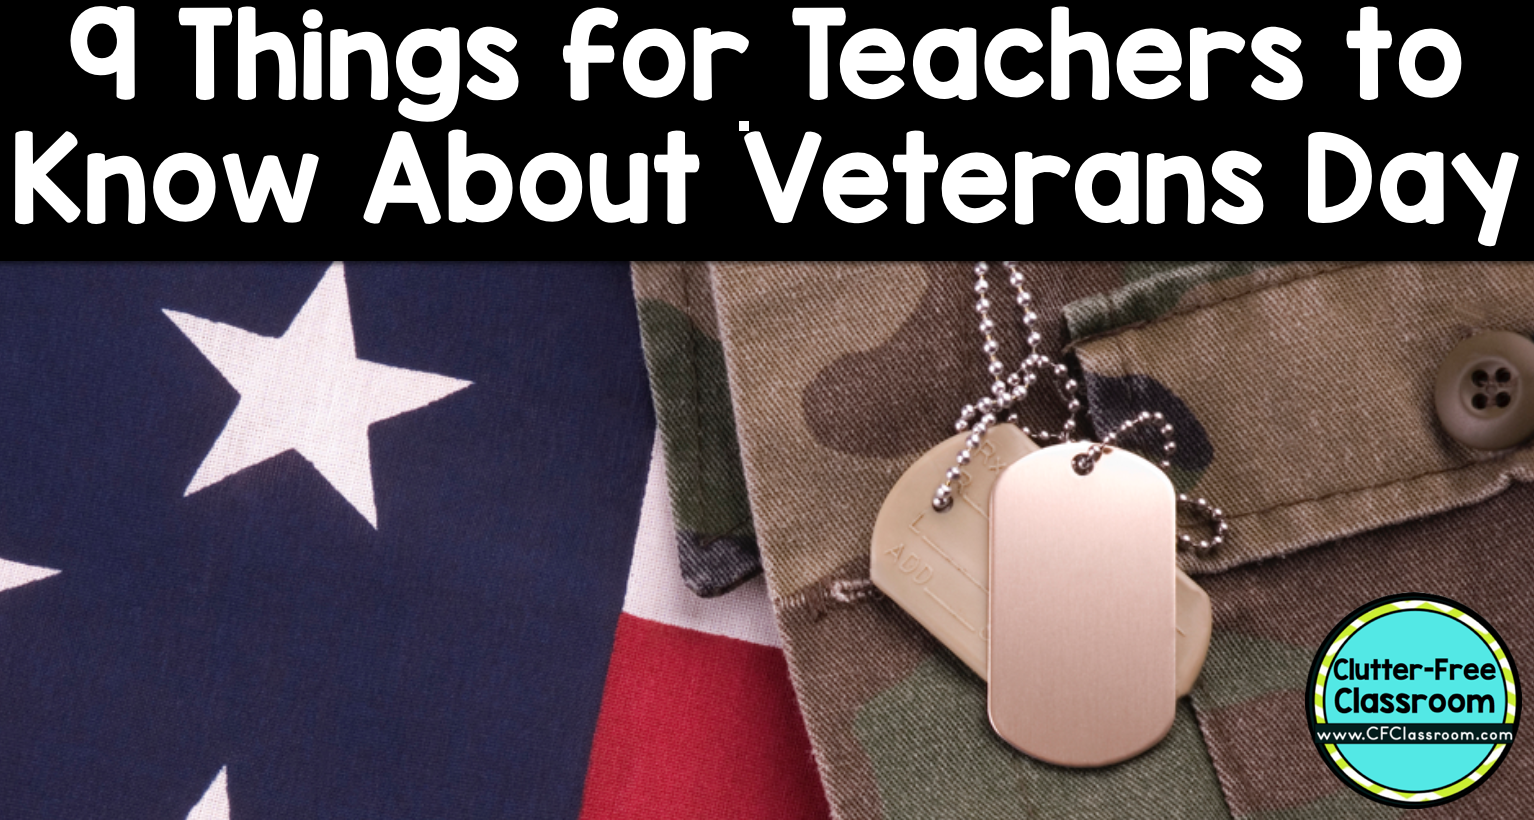 9 Things Teachers Should Know About Veterans Day